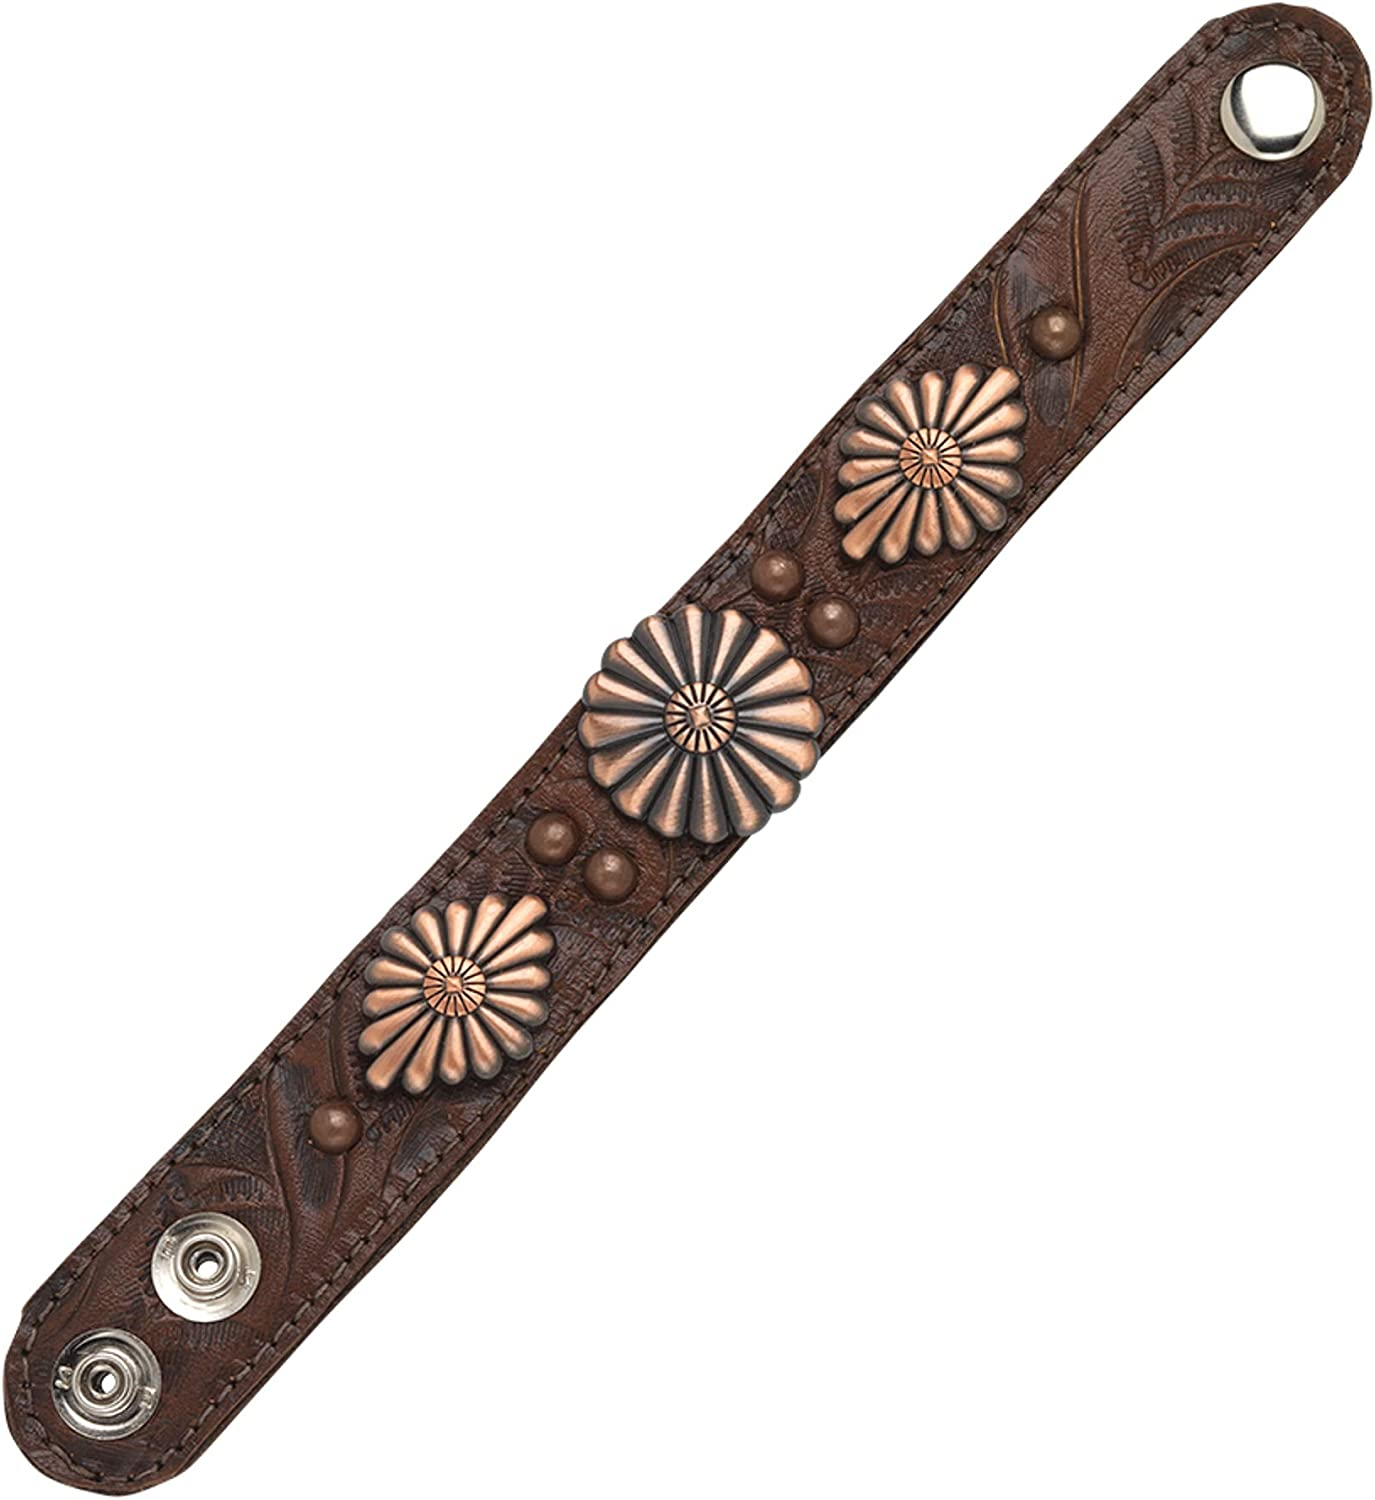 American West Narrow Genuine Leather Cuff Bracelet | Antique Copper Accents - Chestnut Brown